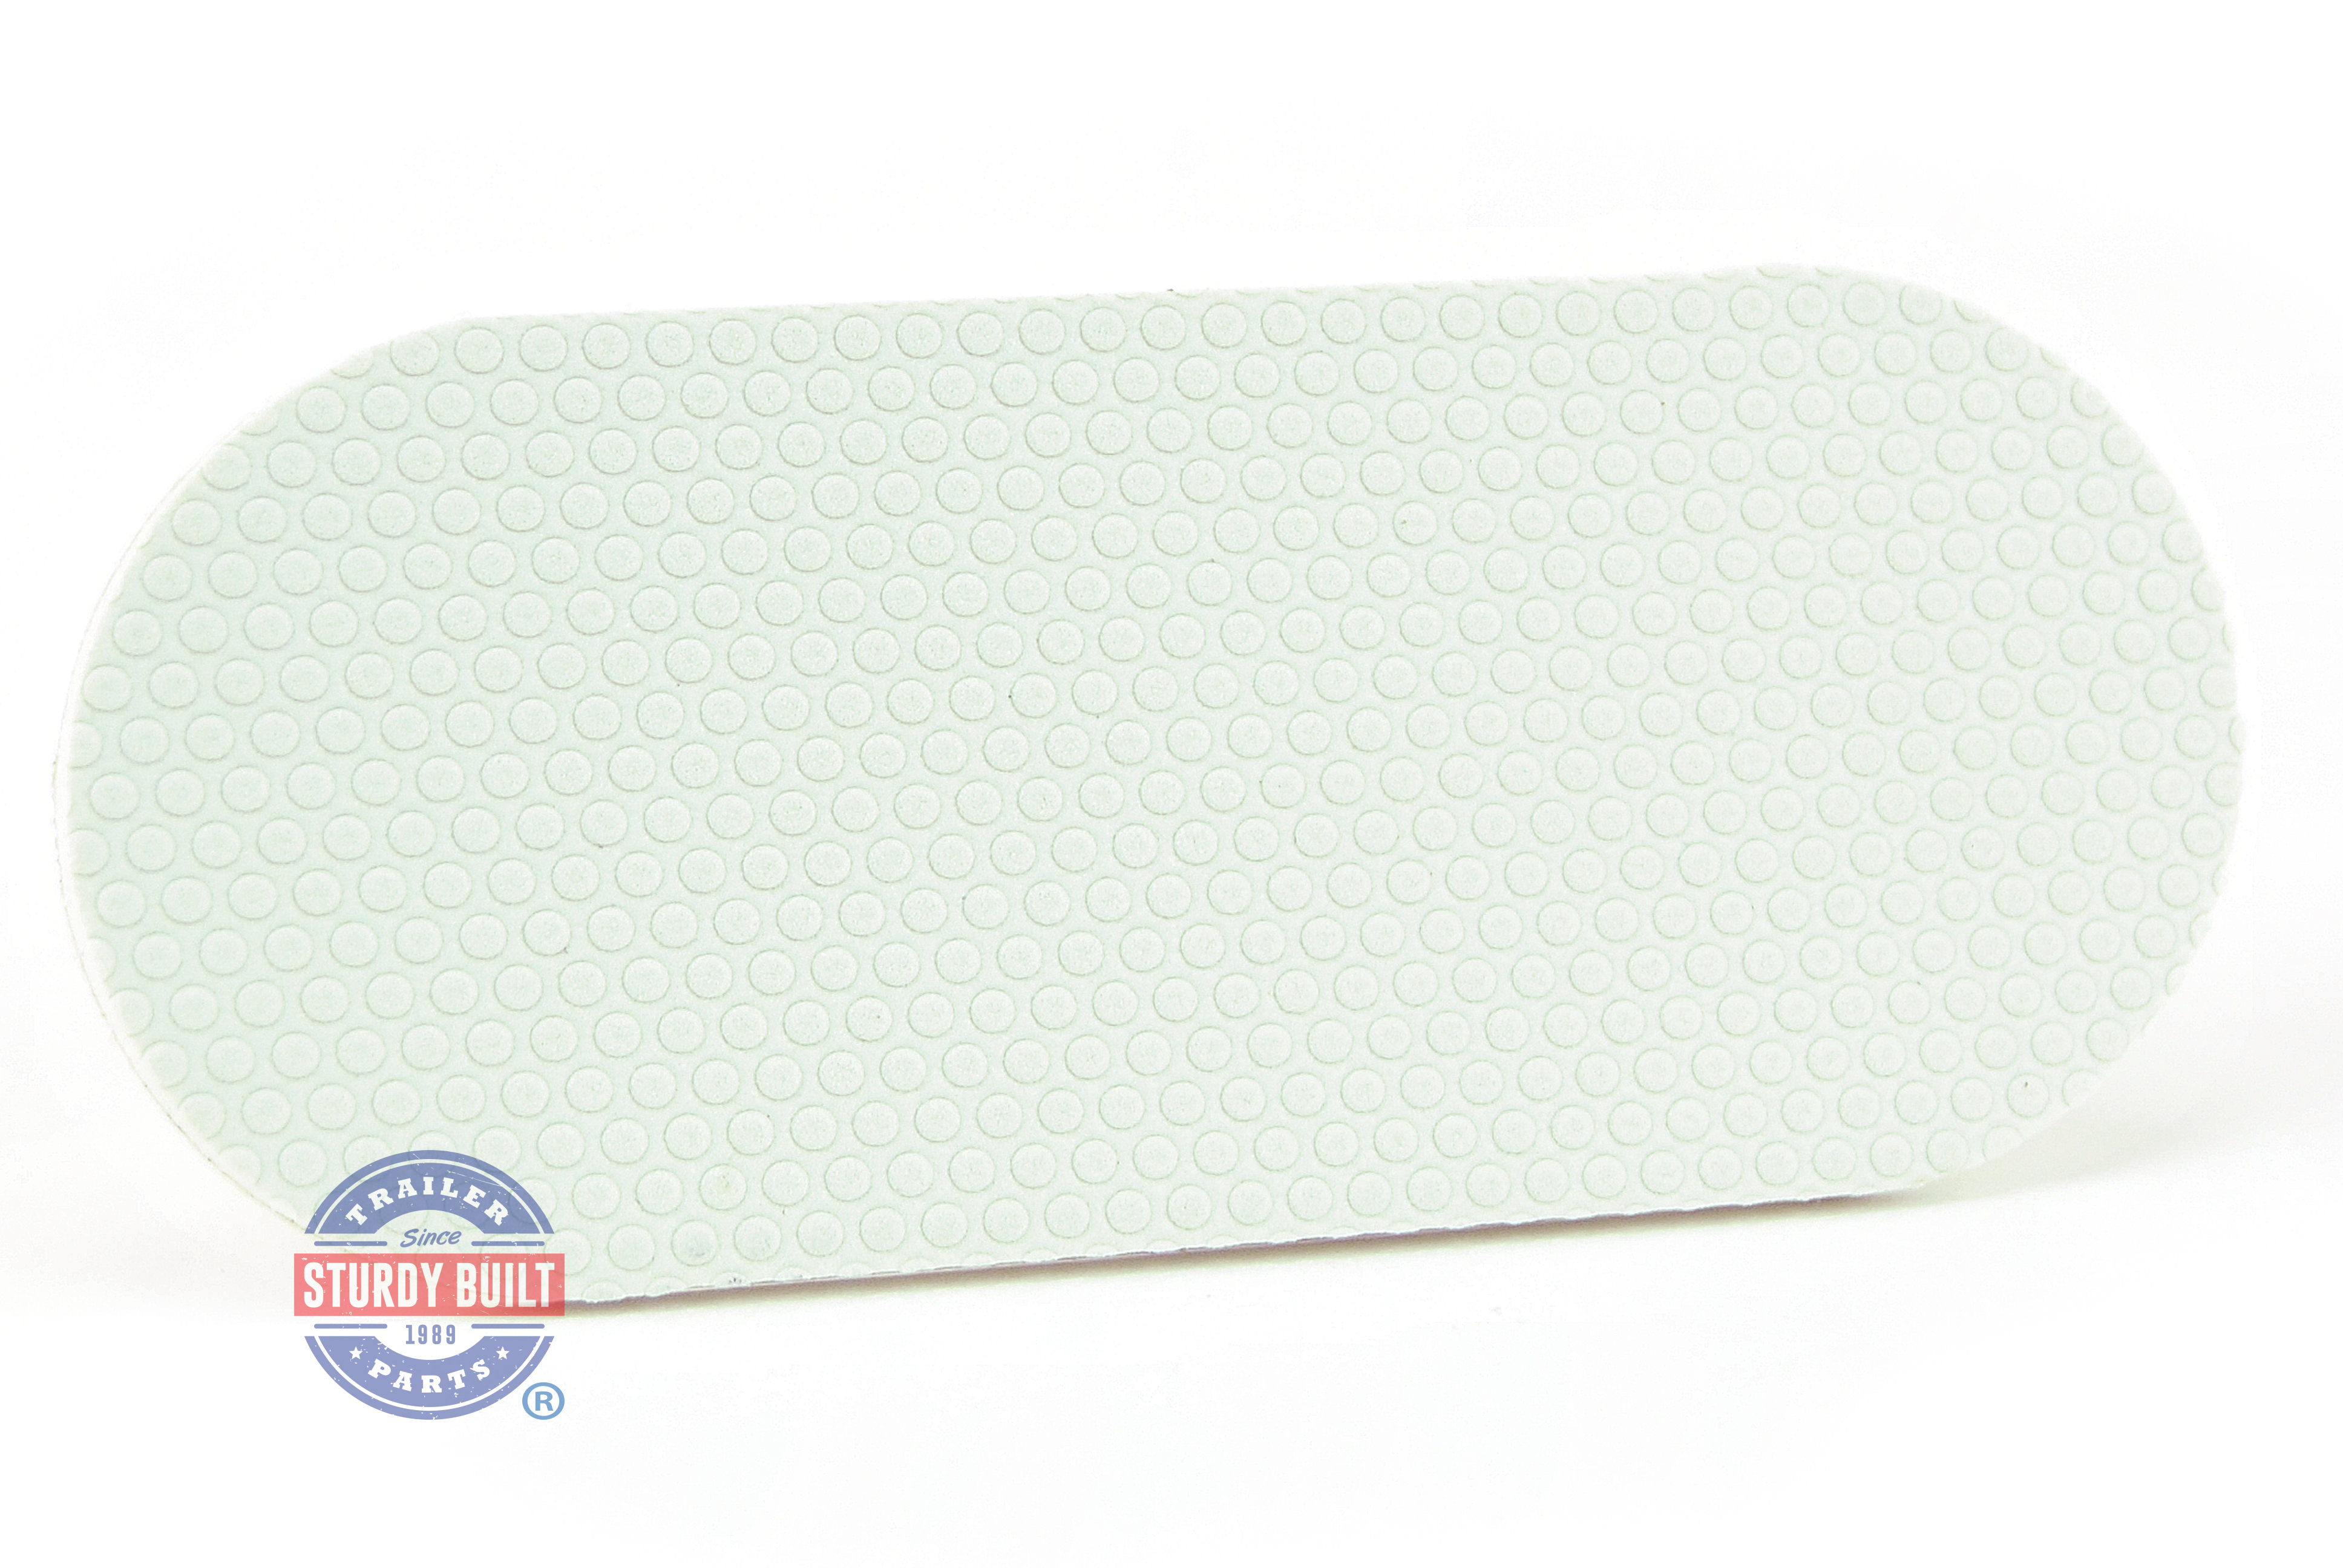 SeaDek Boat Traction Pad 5 1/2 inch Cool Grey